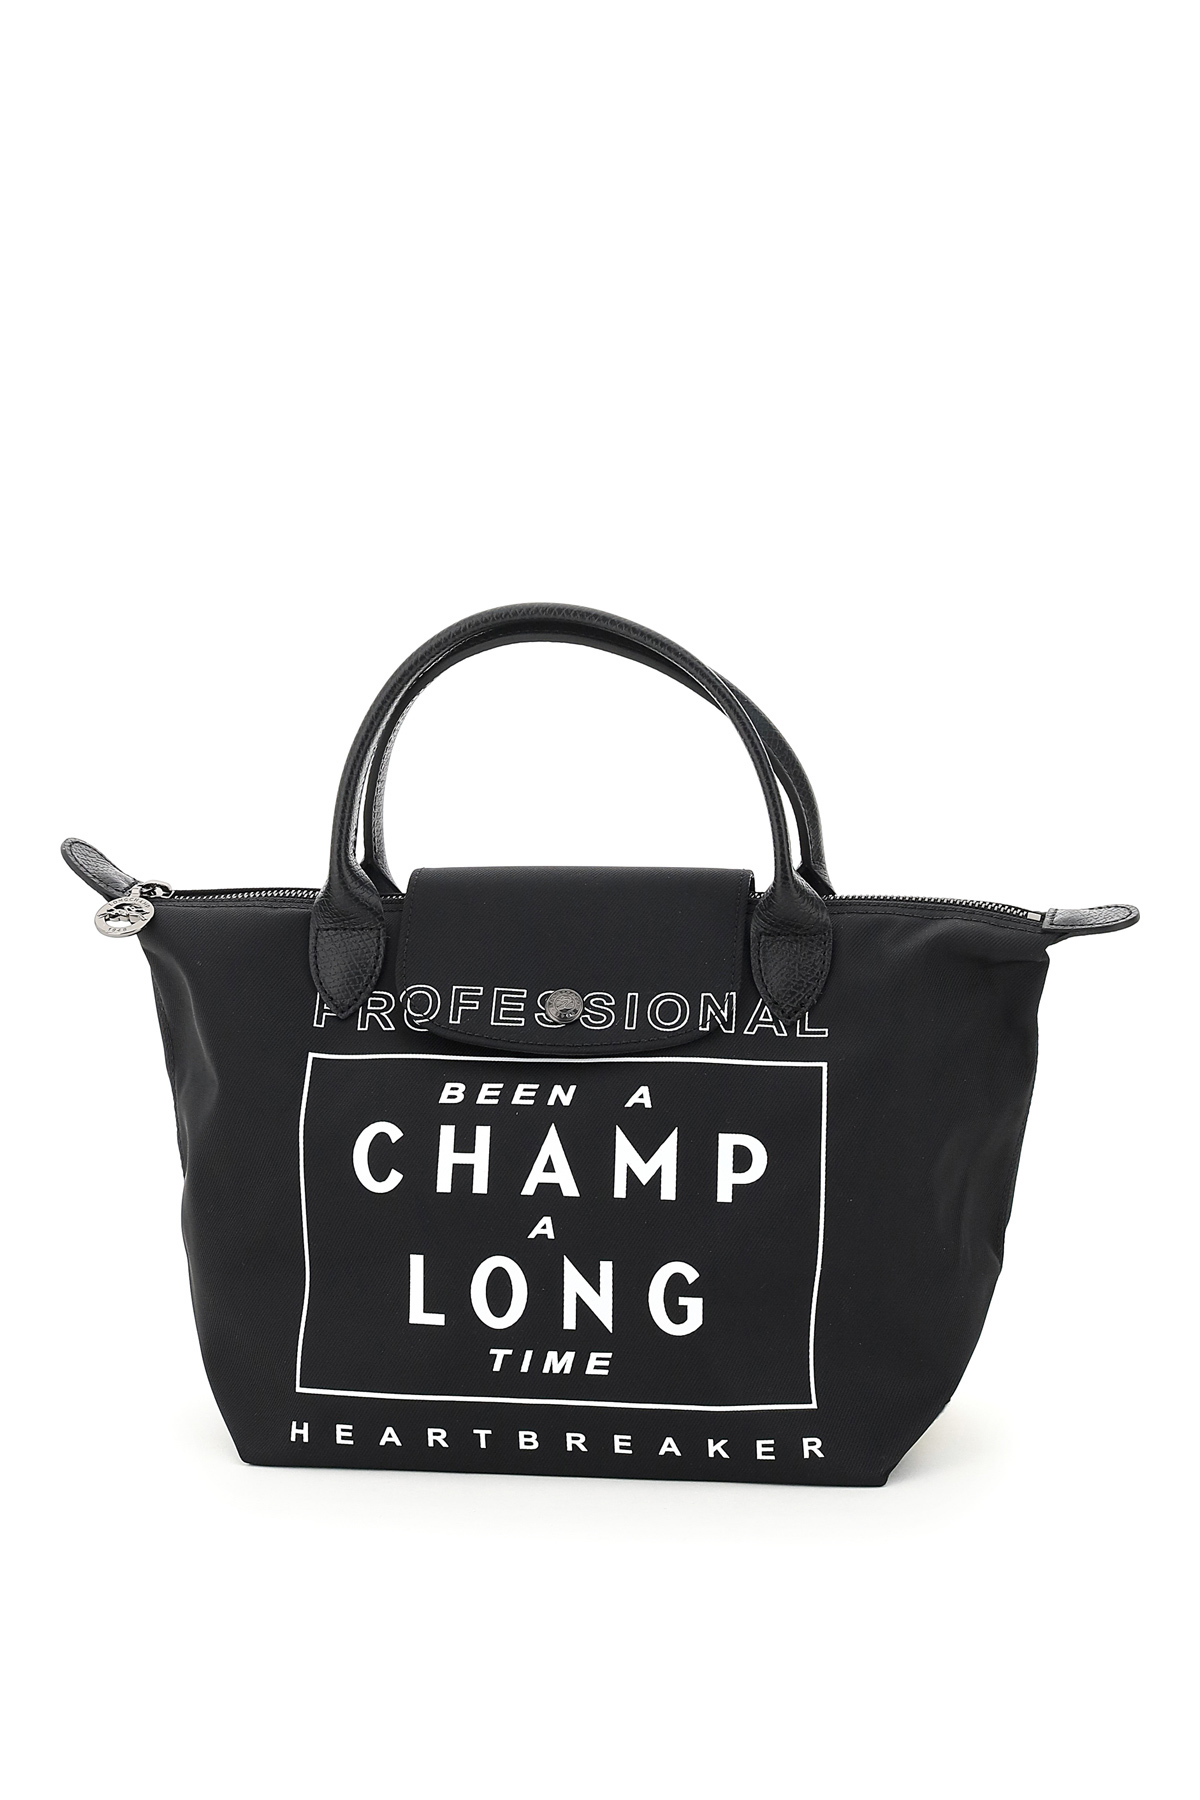 Longchamp mini bag con stampa been a champ a long time